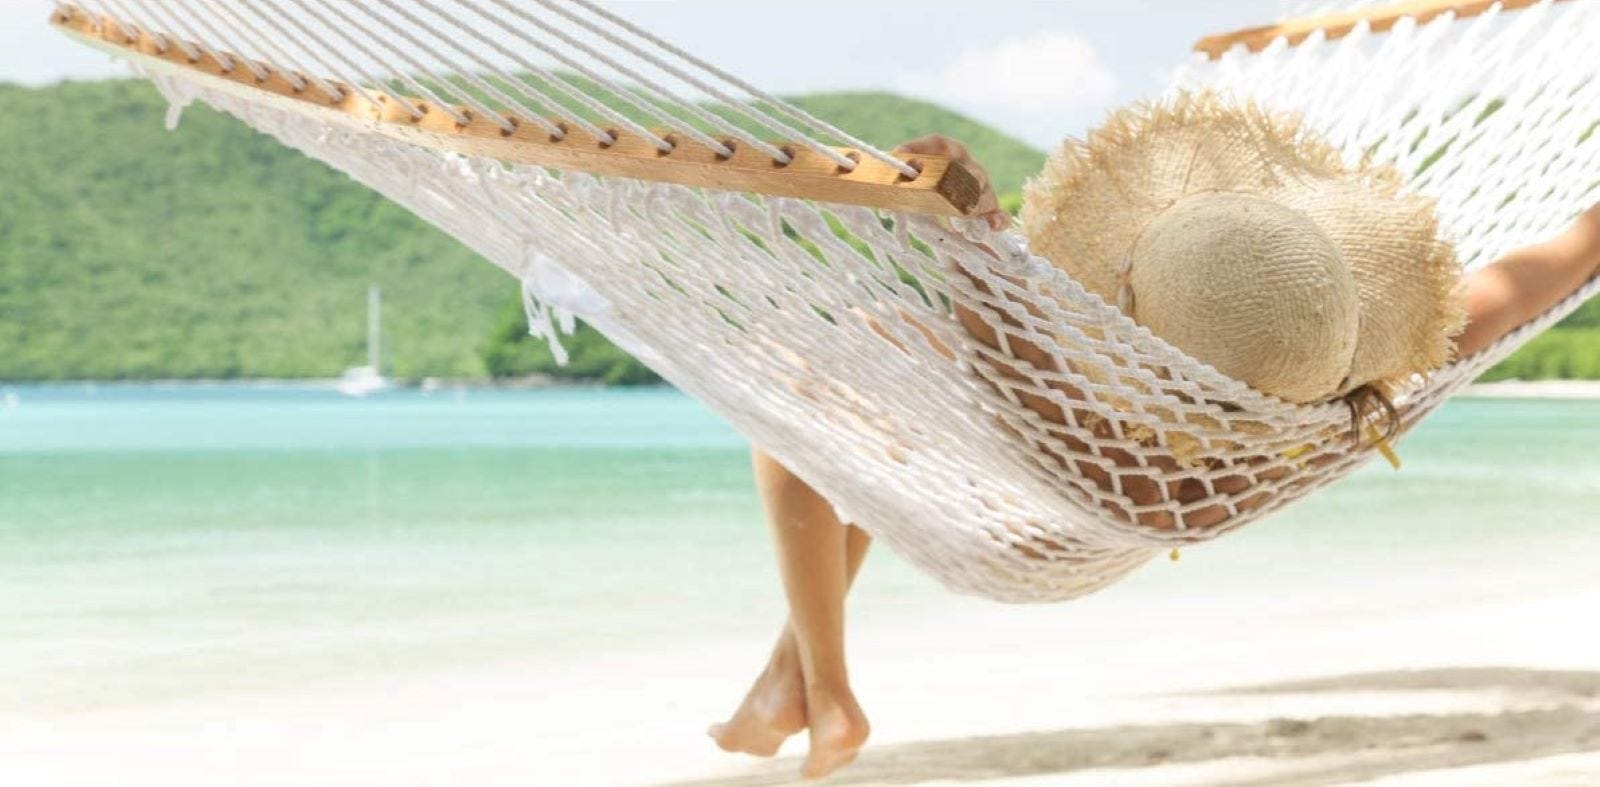 A woman resting in the Y-Stock hammock at the beach.